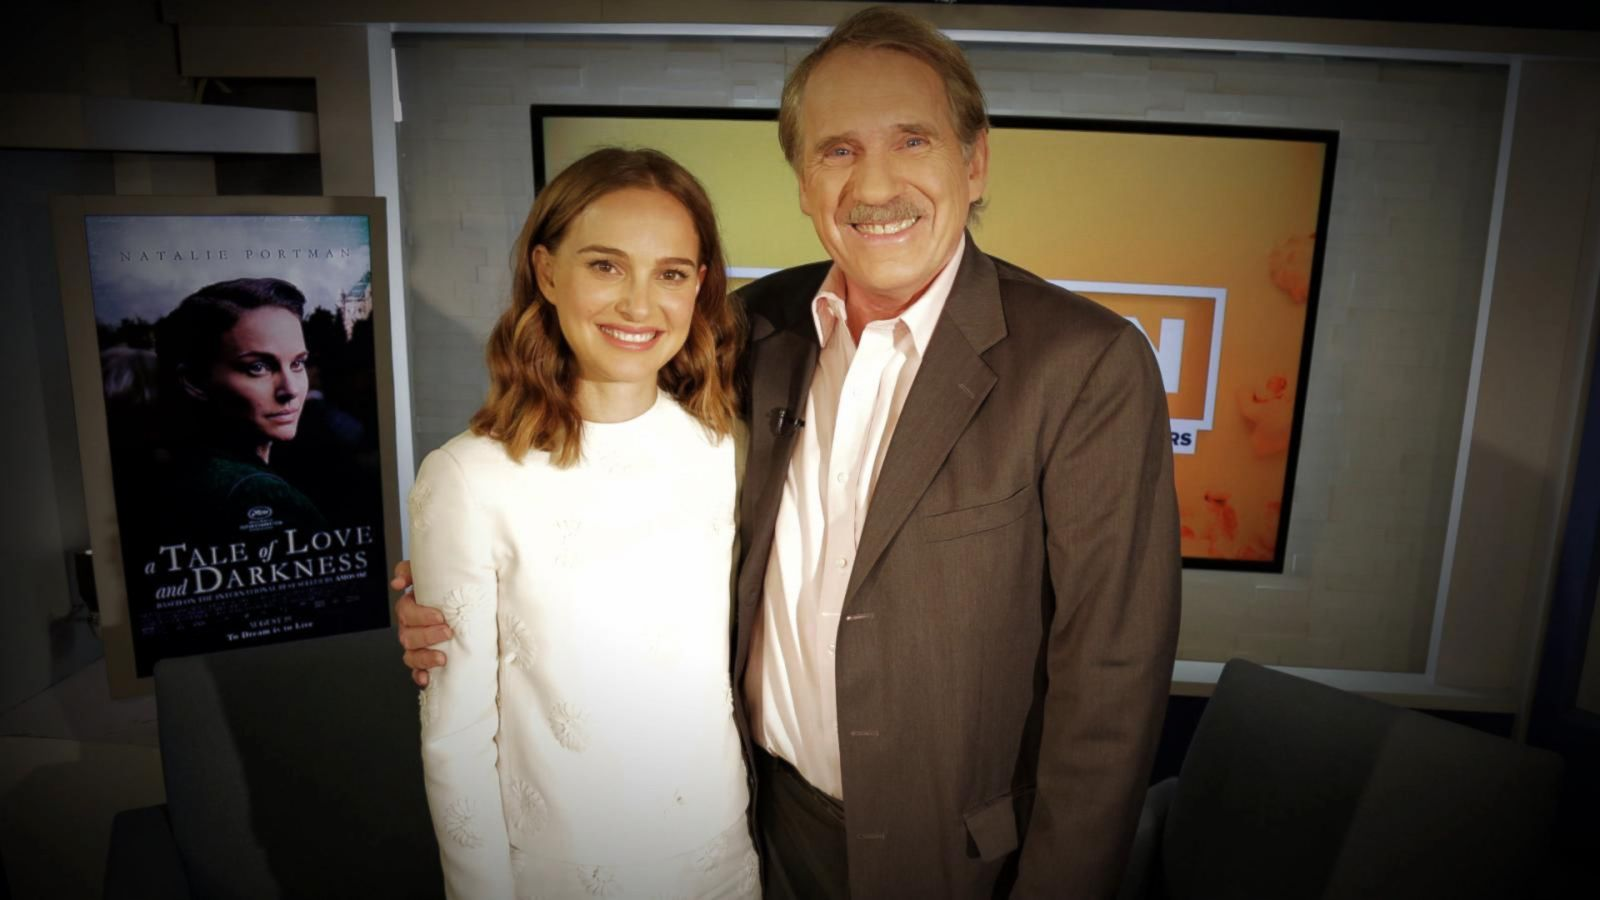 """VIDEO: Natalie Portman on the 'Magical' Feeling of Directing and Starring in """"A Tale of Love and Darkness"""""""